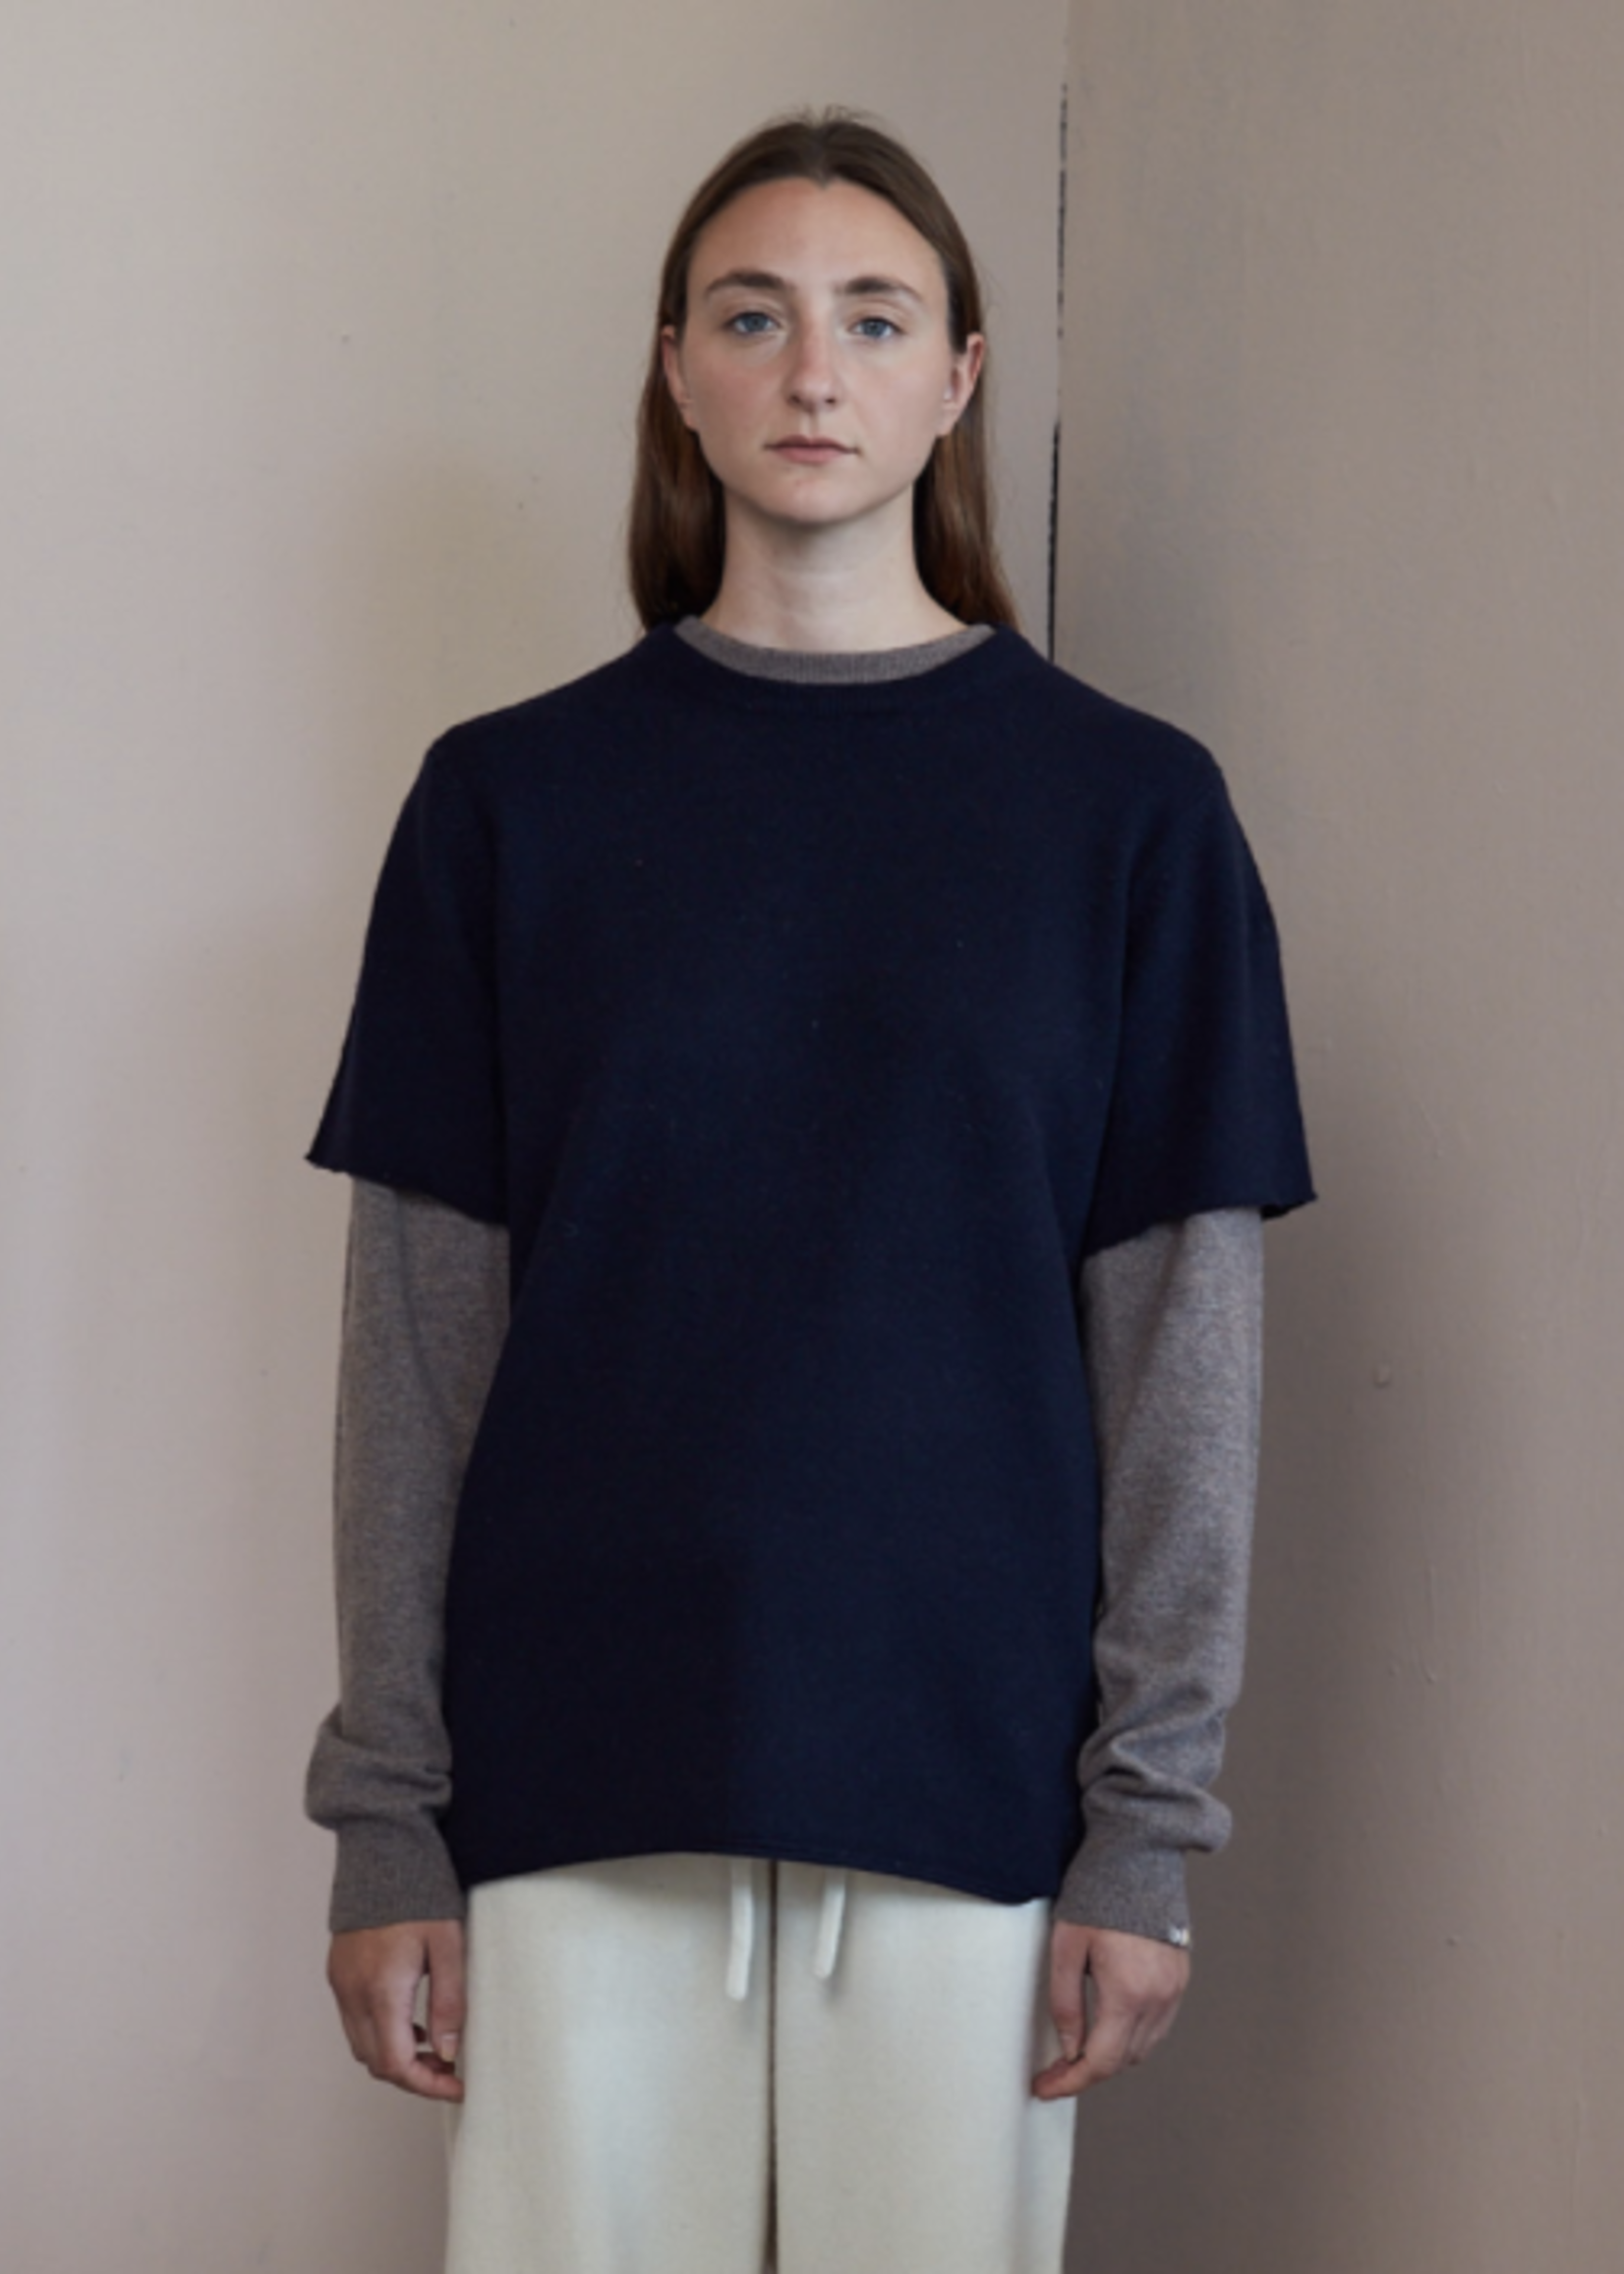 extremecashmere x Extreme cashmere x TEE navy